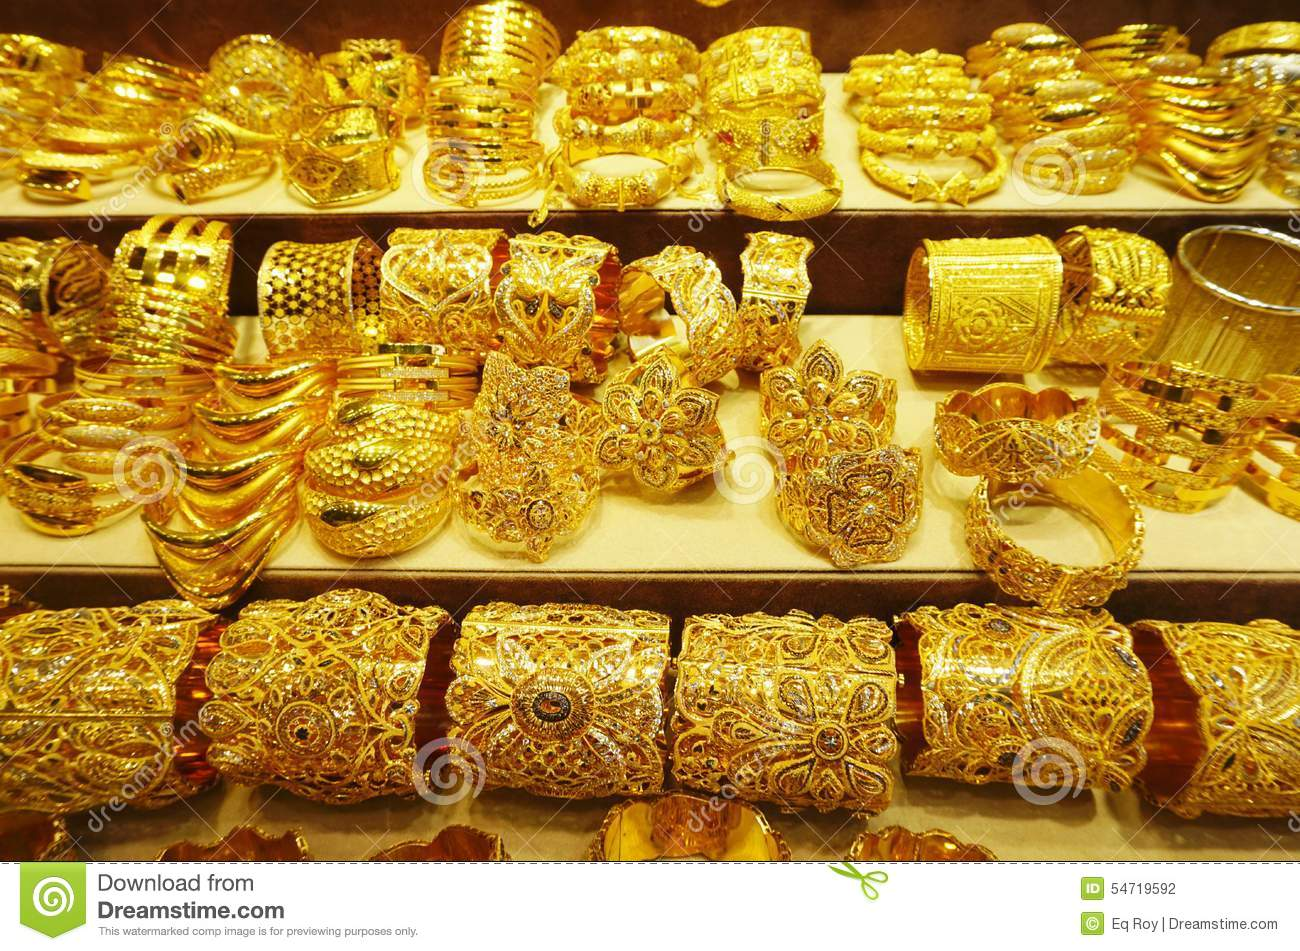 souk for united arab picture bracelets detail sale royalty free emirates stock at in image gold photo dubai